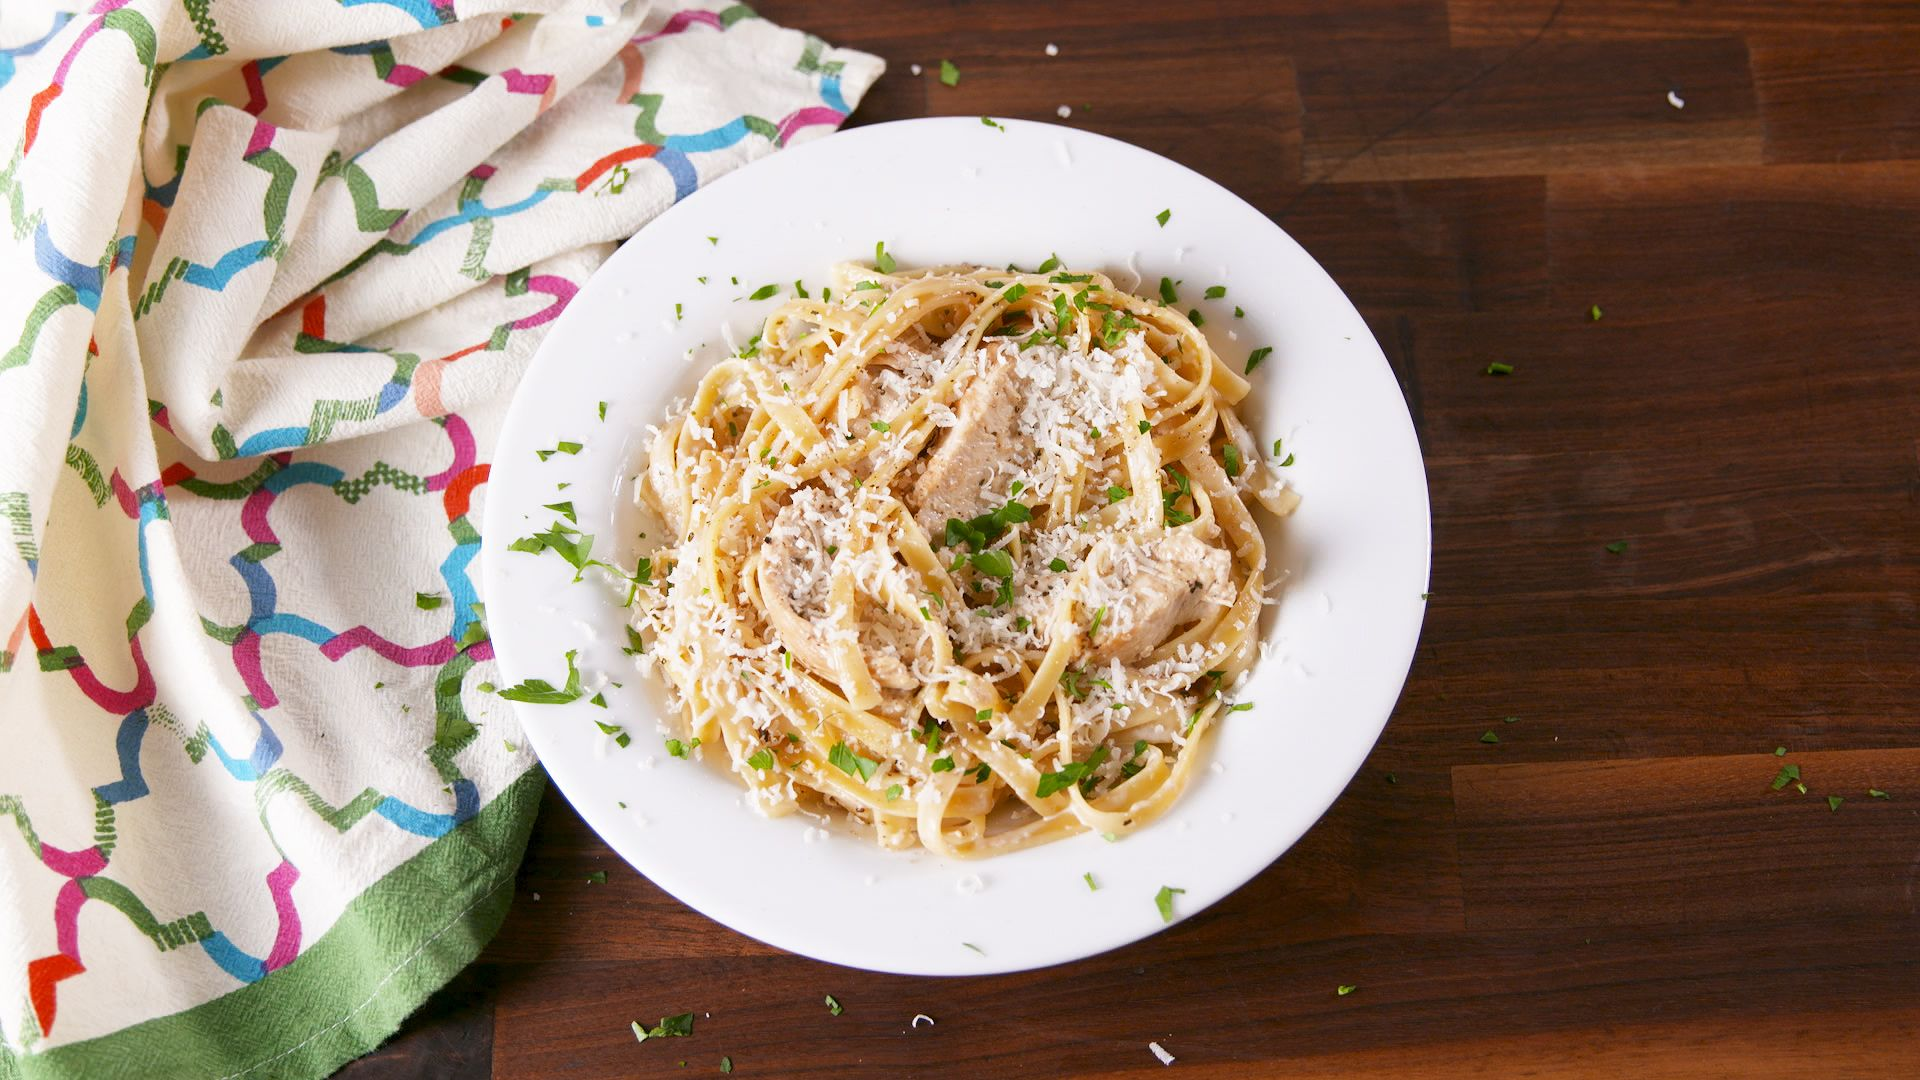 Who Knew? An Instant Pot Can Make Amazing Chicken Alfredo